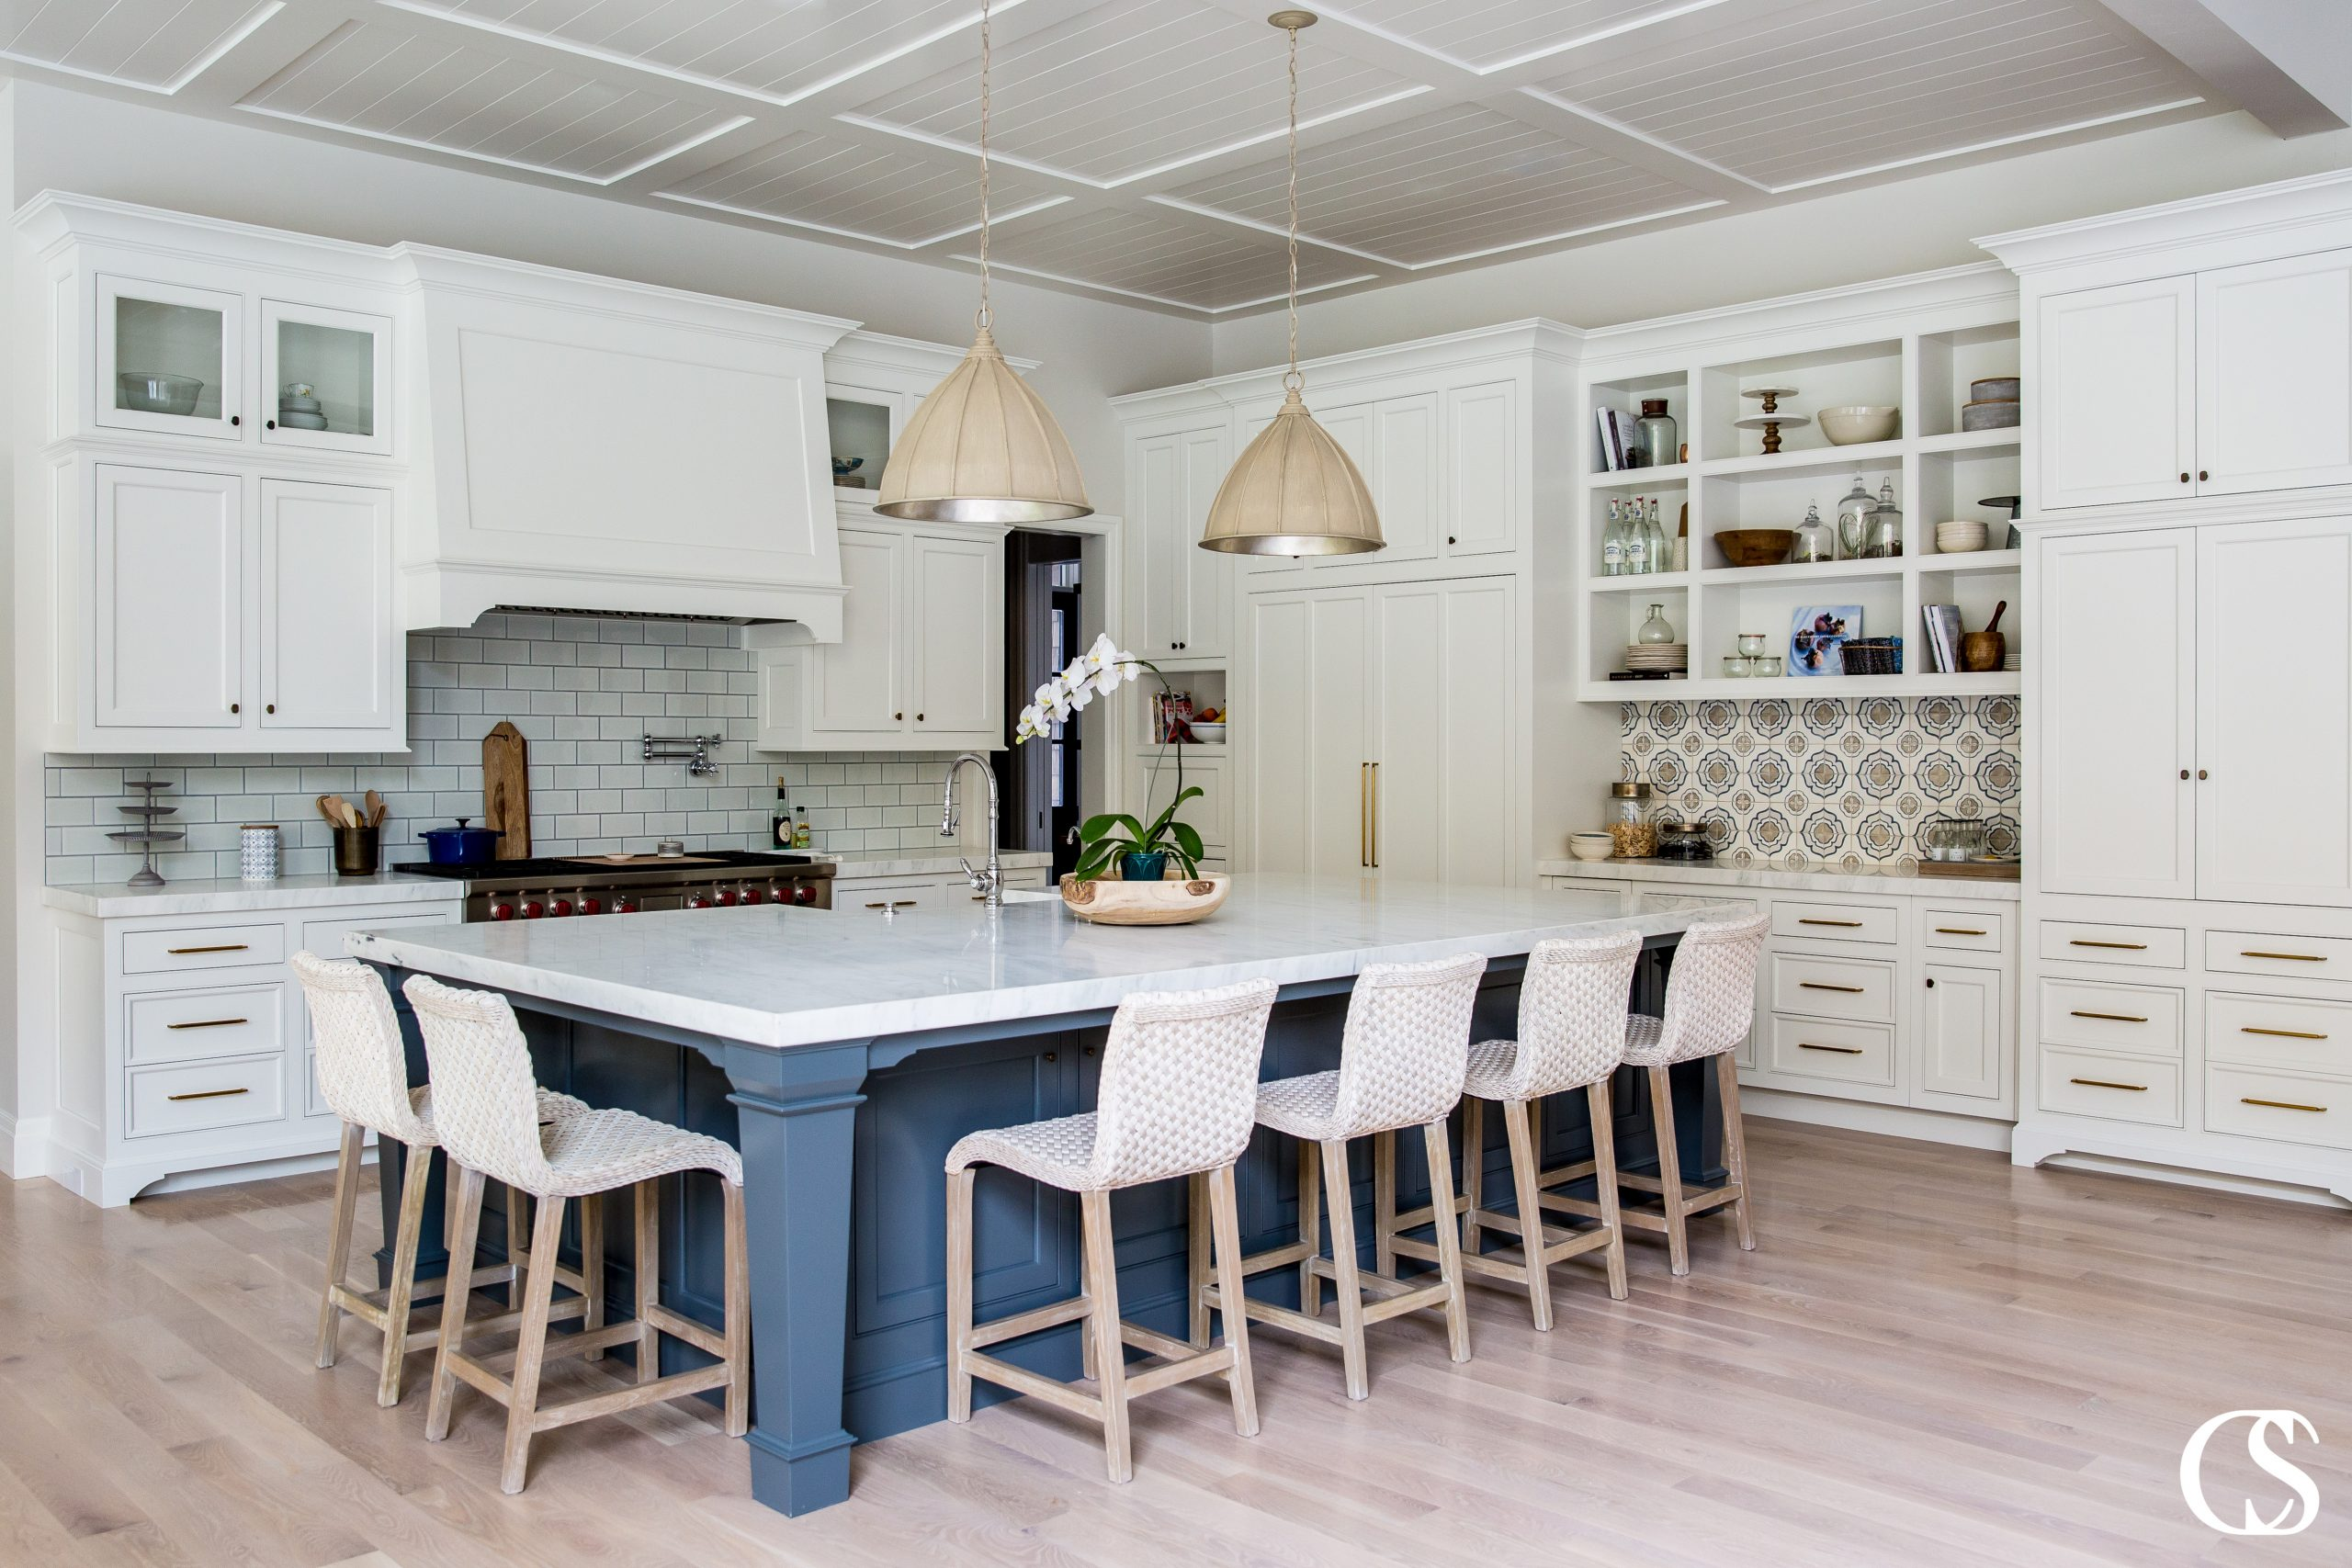 This custom blue kitchen cabinet design creates a room that maximizes space for your social and working needs.